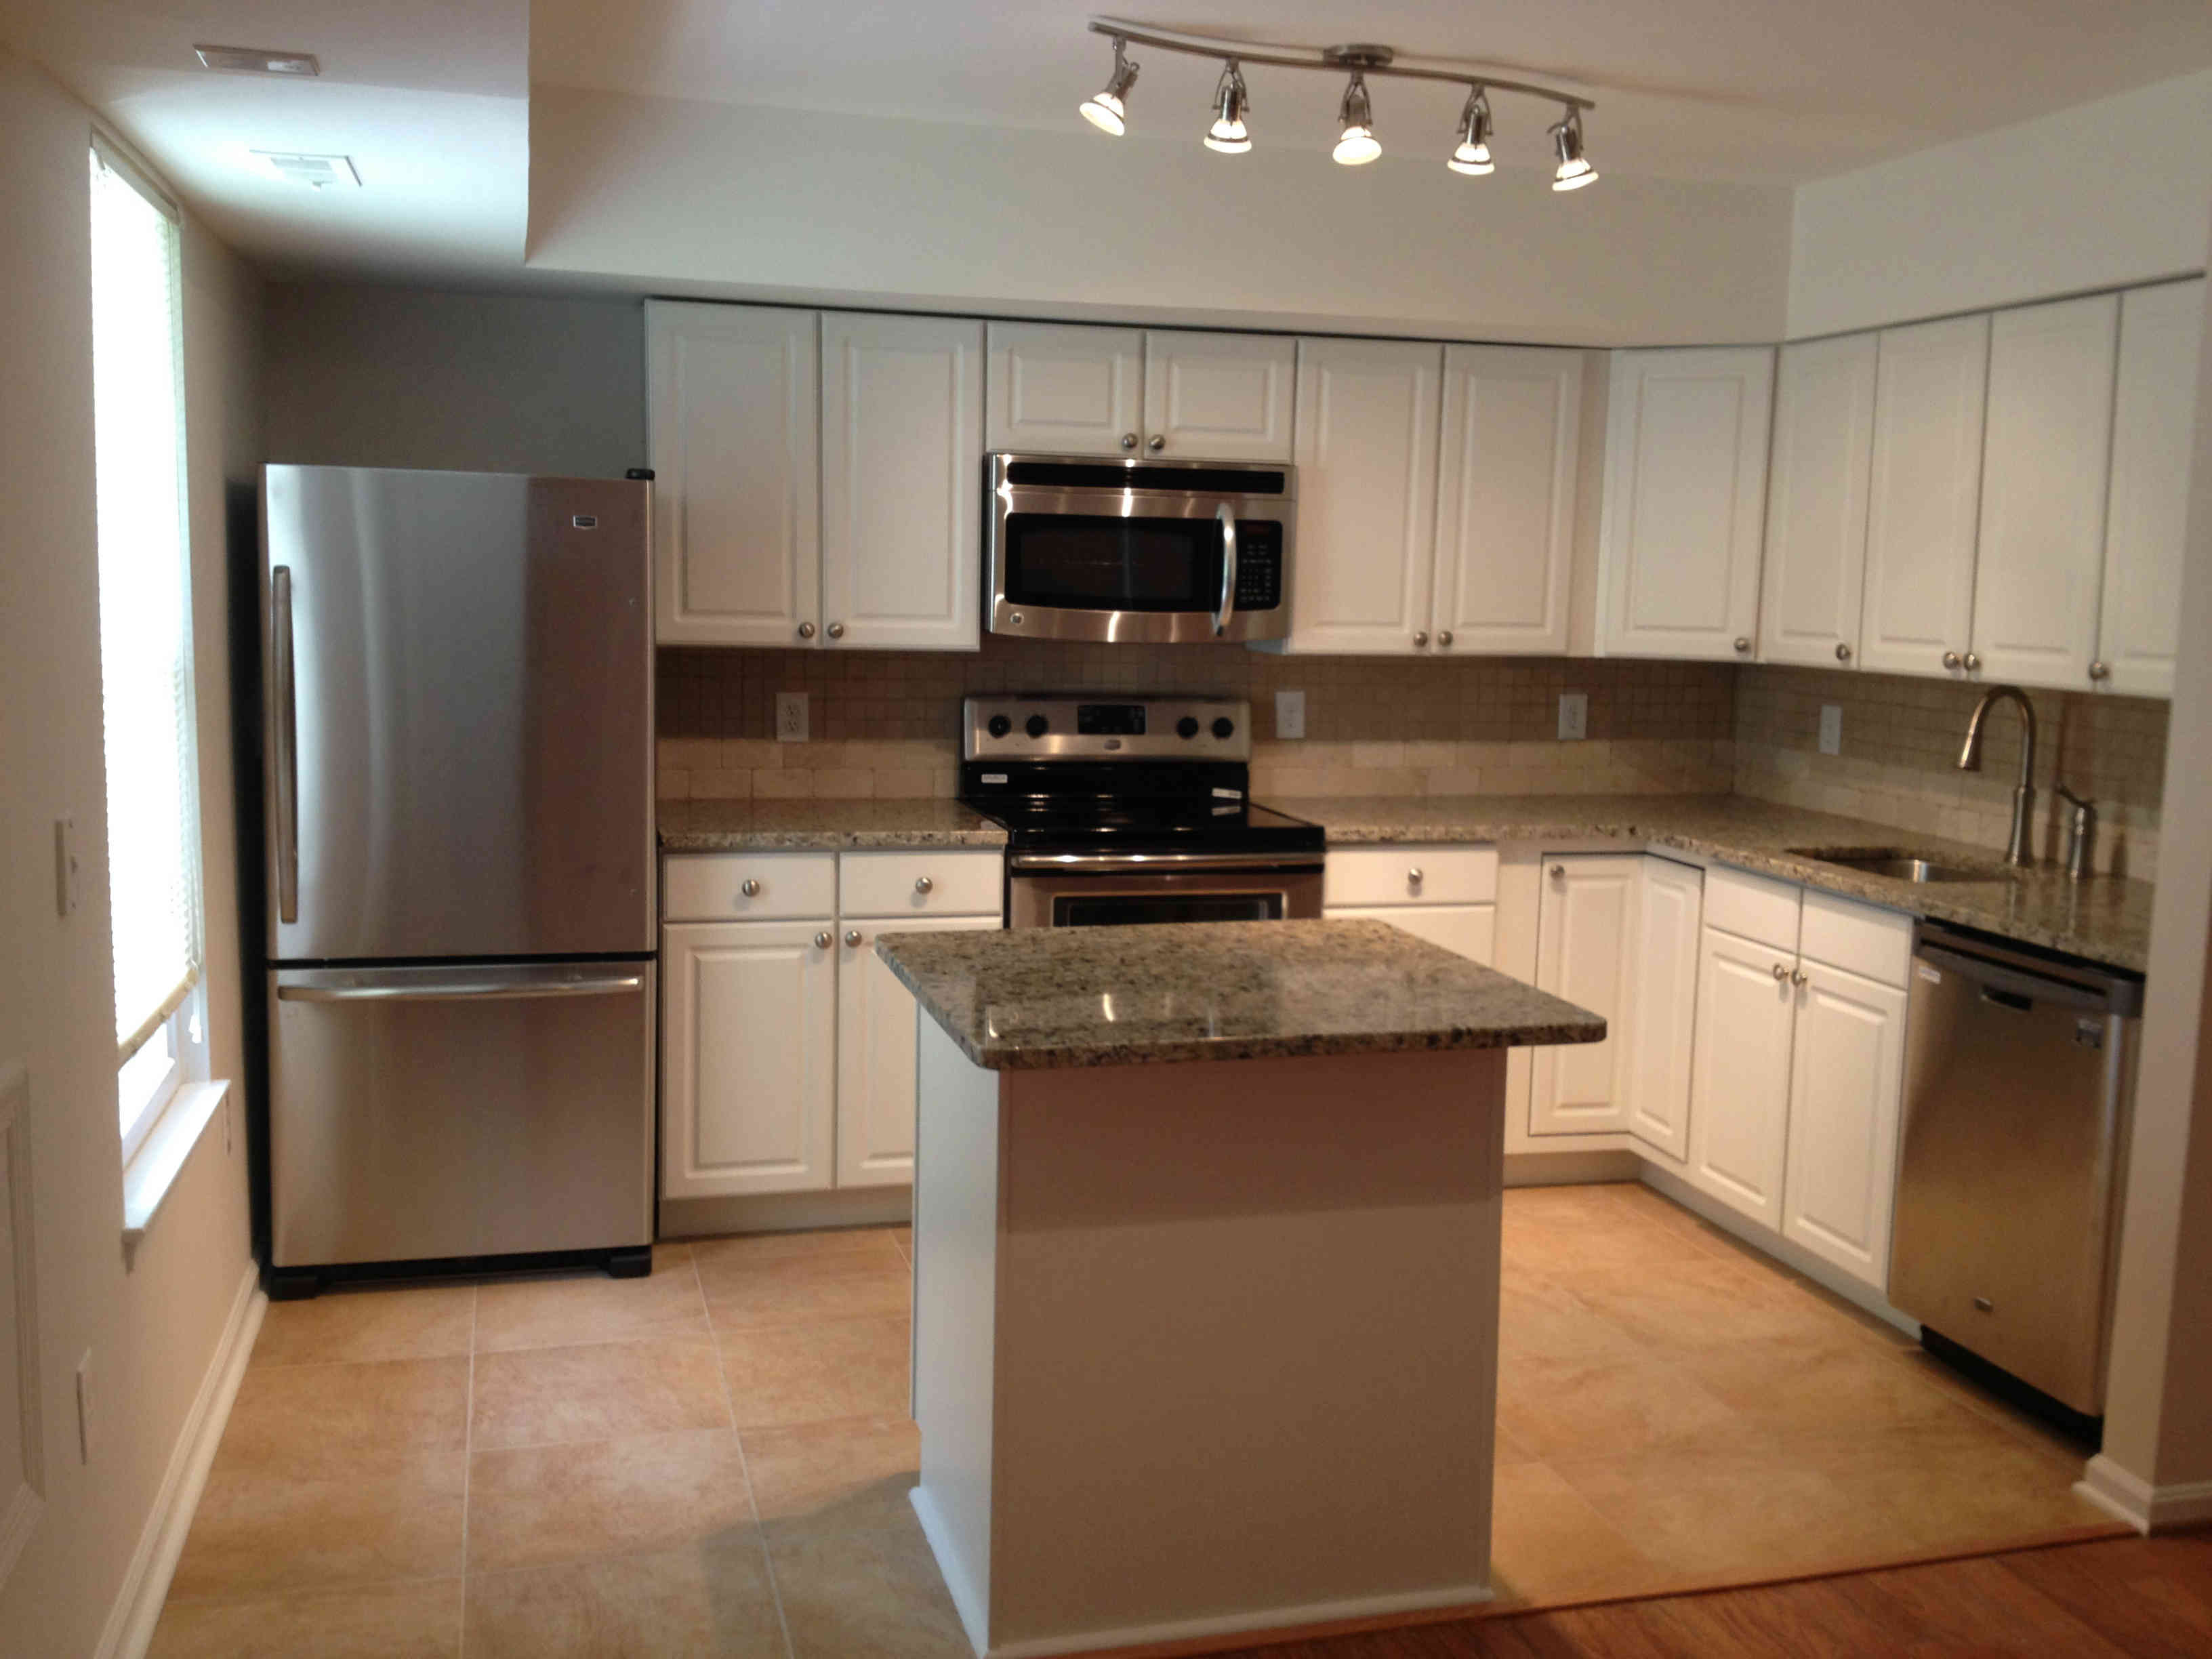 Kitchen Remodeling Bethesda Md Concept Property Kitchen Remodeling In Washington Dc & Bethesda Md  Melness .